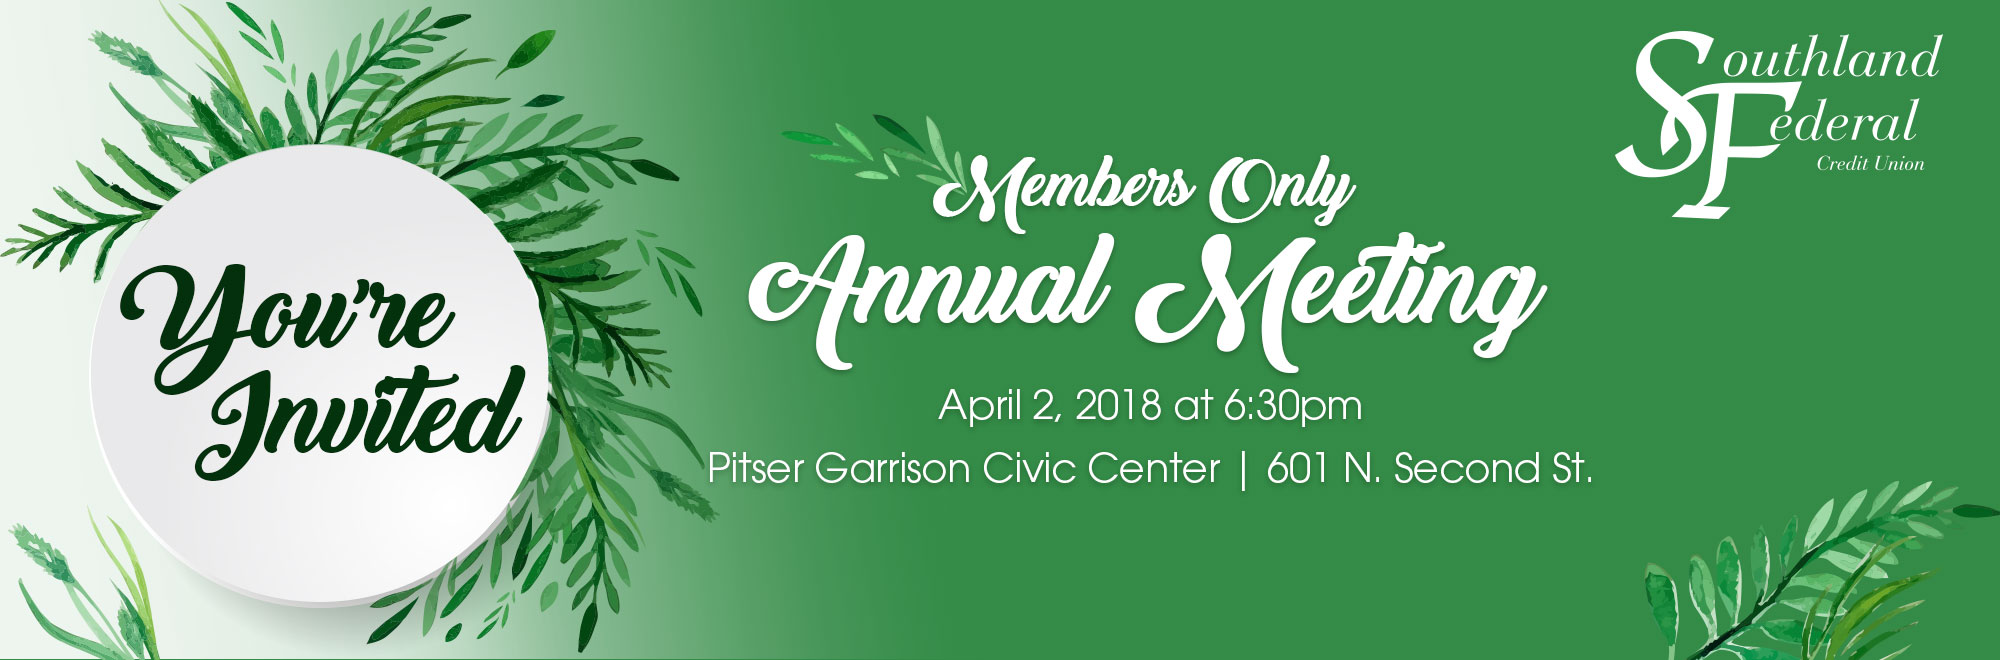 Members Only Annual Meeting April 2, 2018